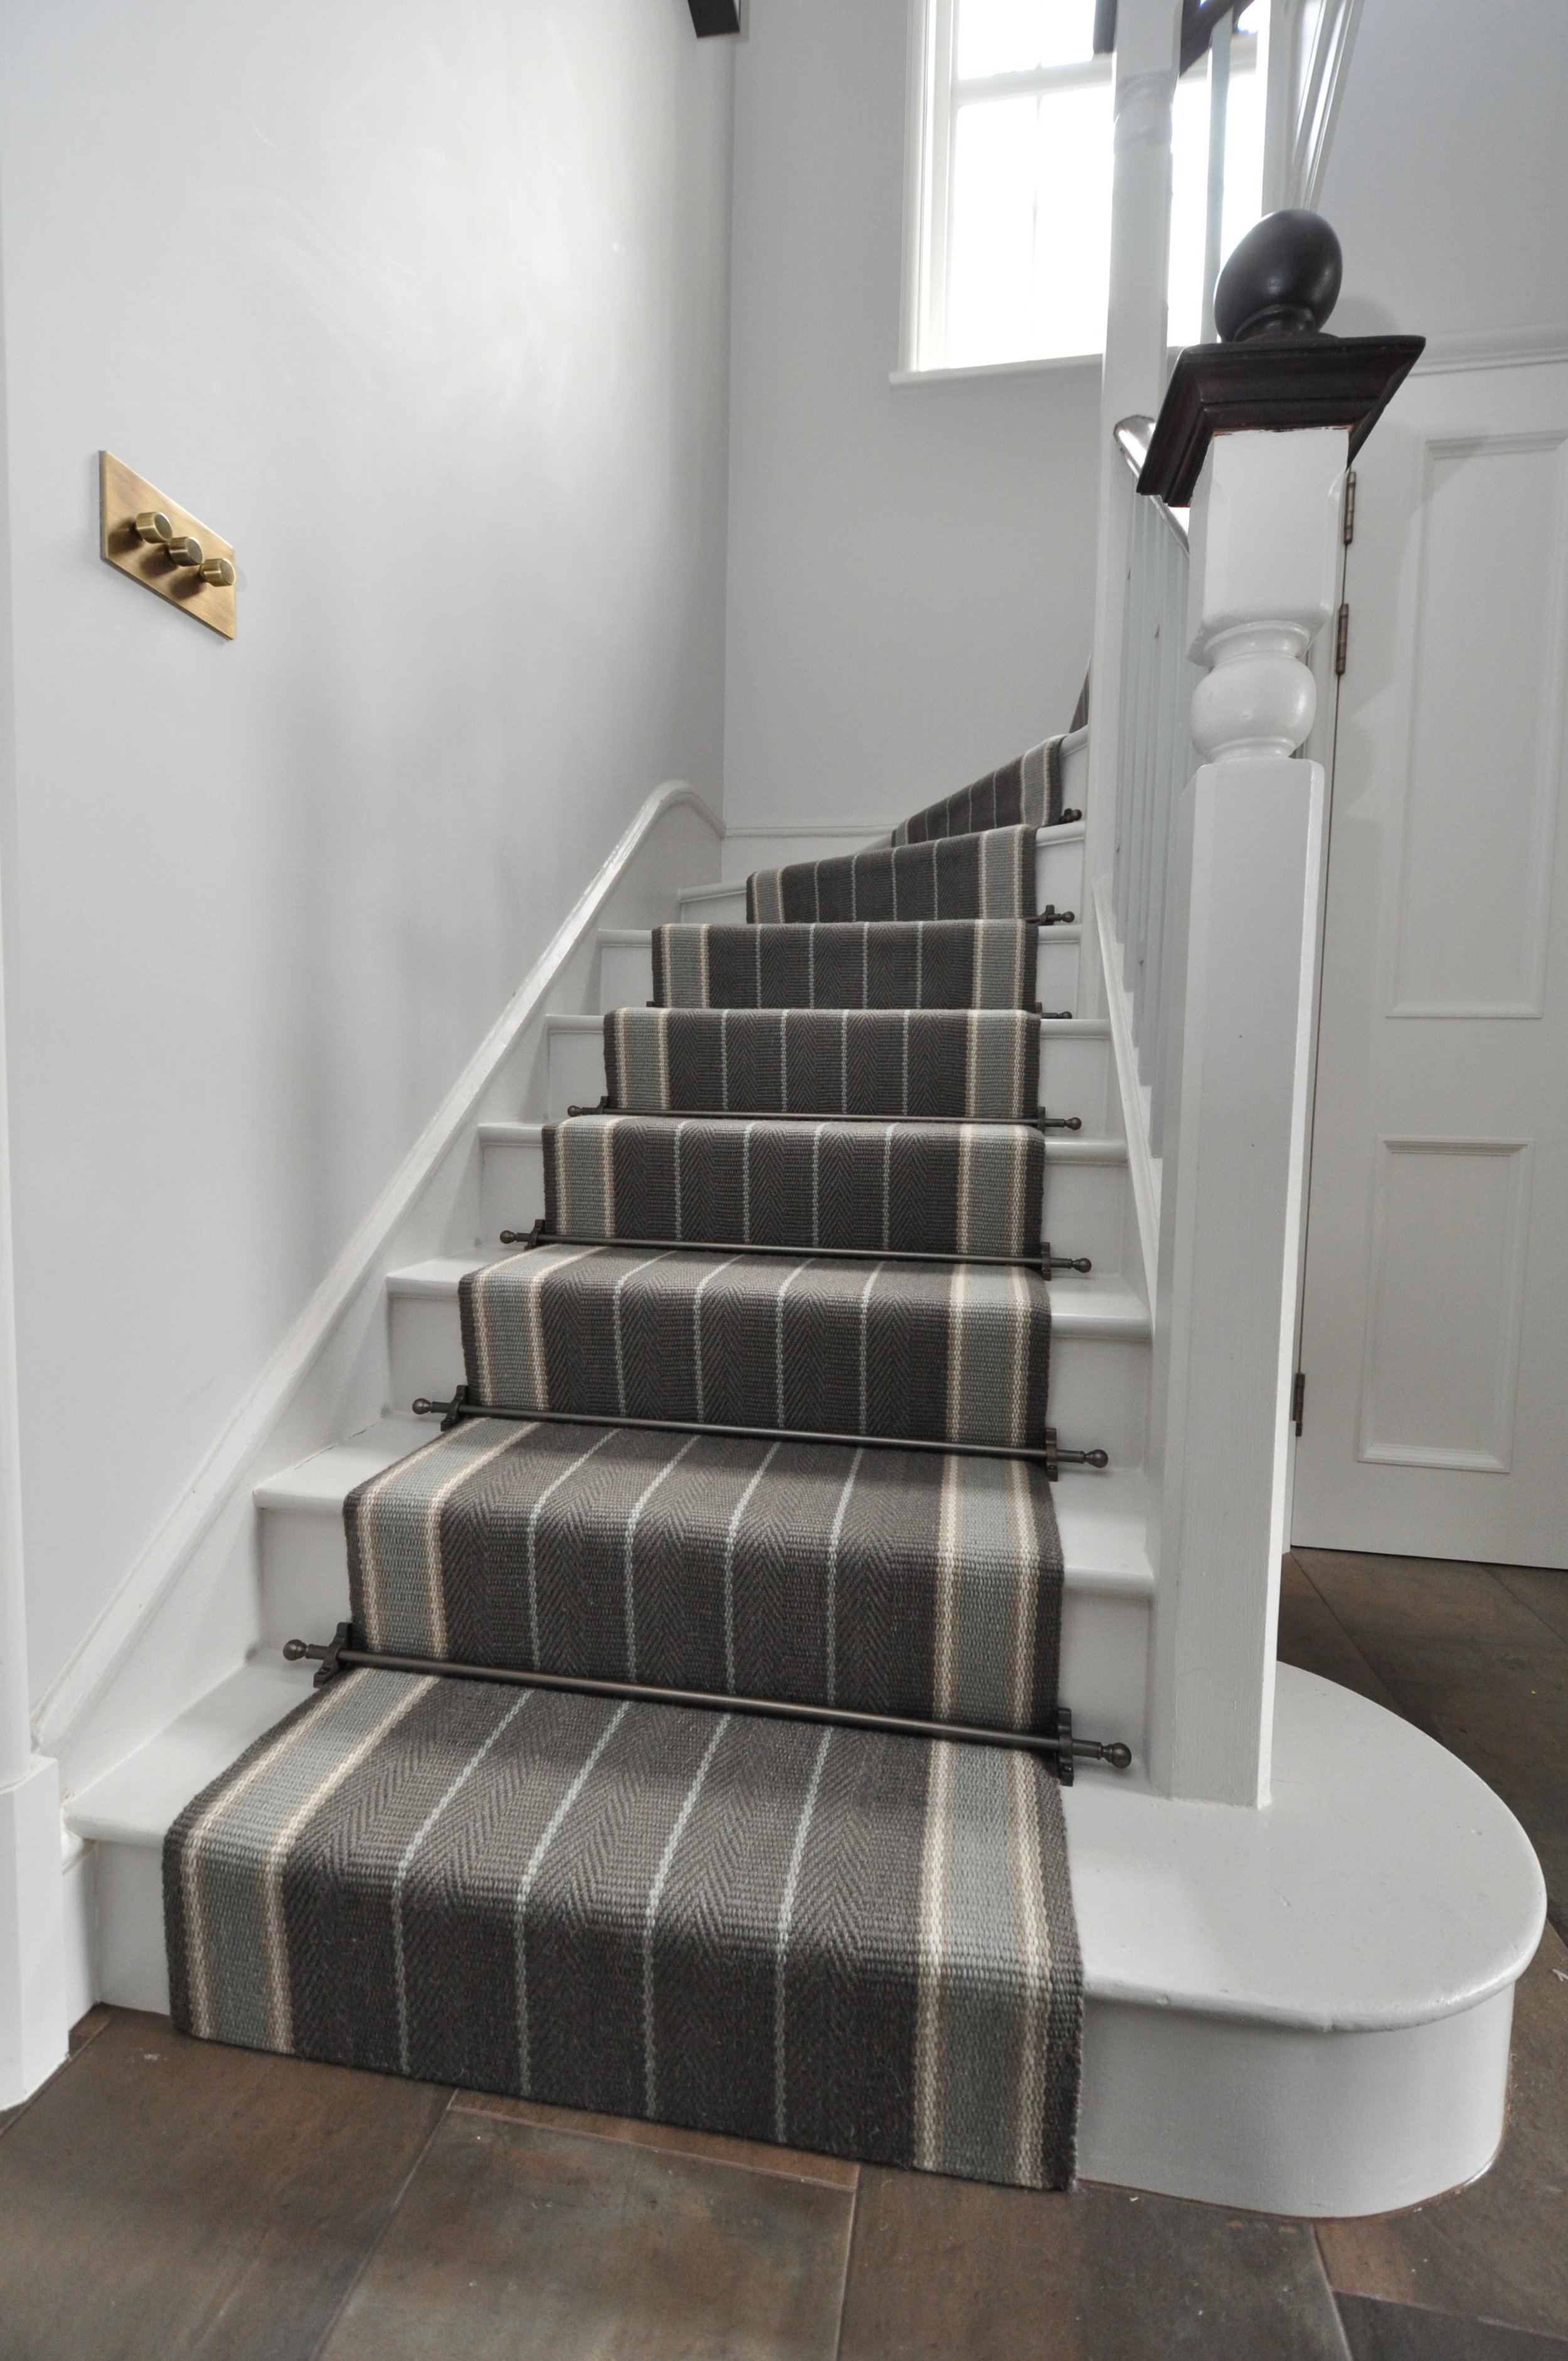 flatweave-stair-runner-london-bowloom-carpet-off-the-loom-DSC_1503.jpg